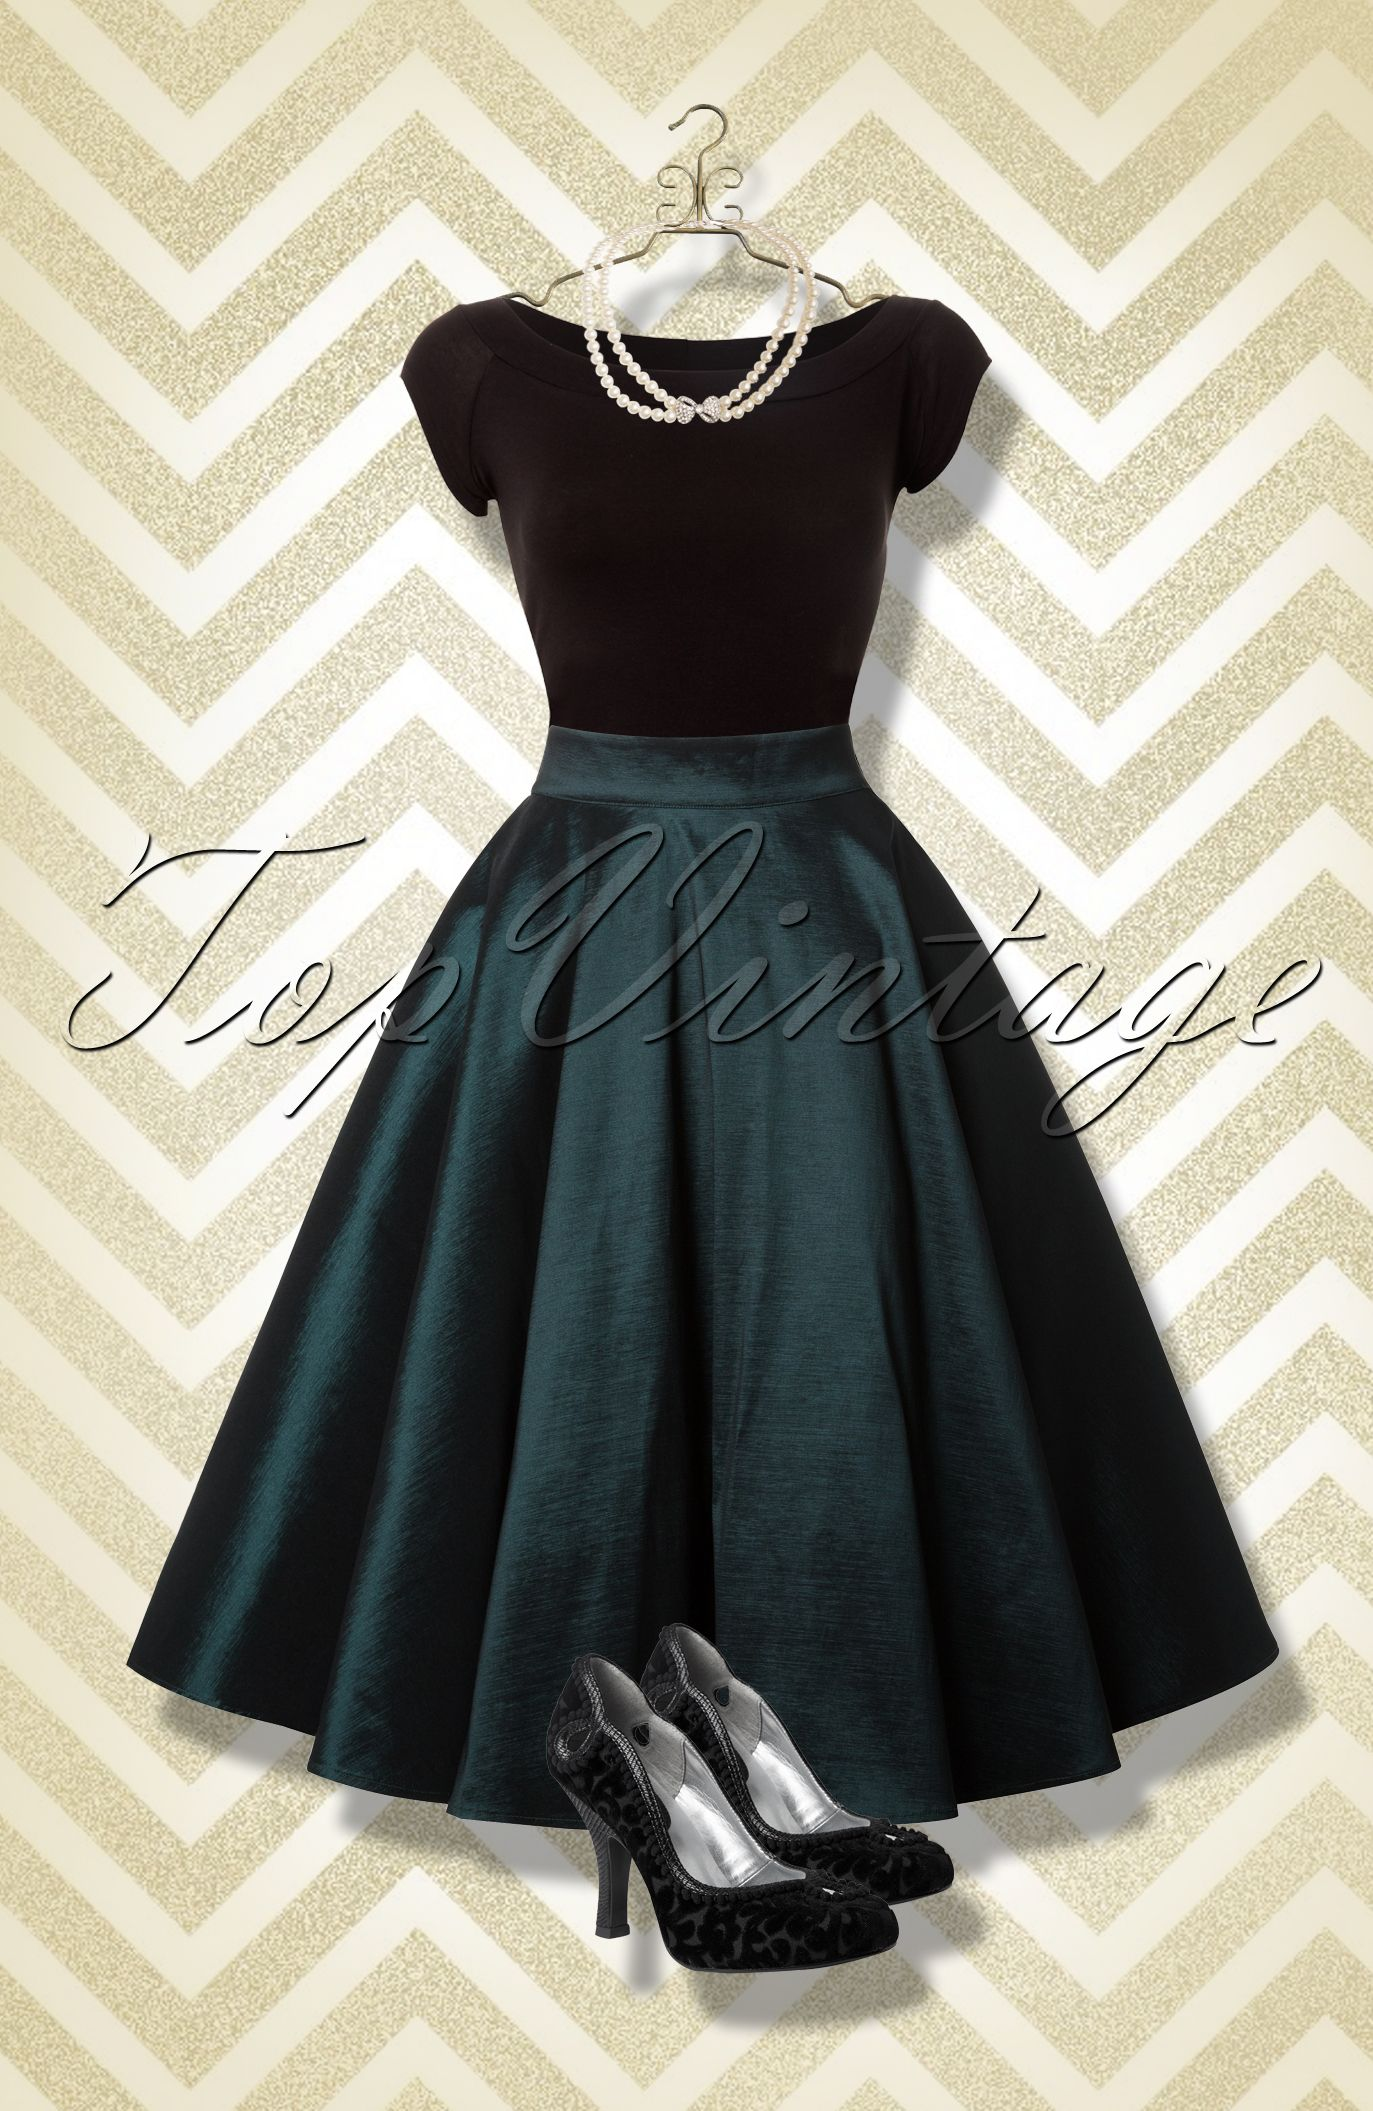 Classy Vintage Party Look Vintage Outfits Classy Fashion Classy Vintage Fashion